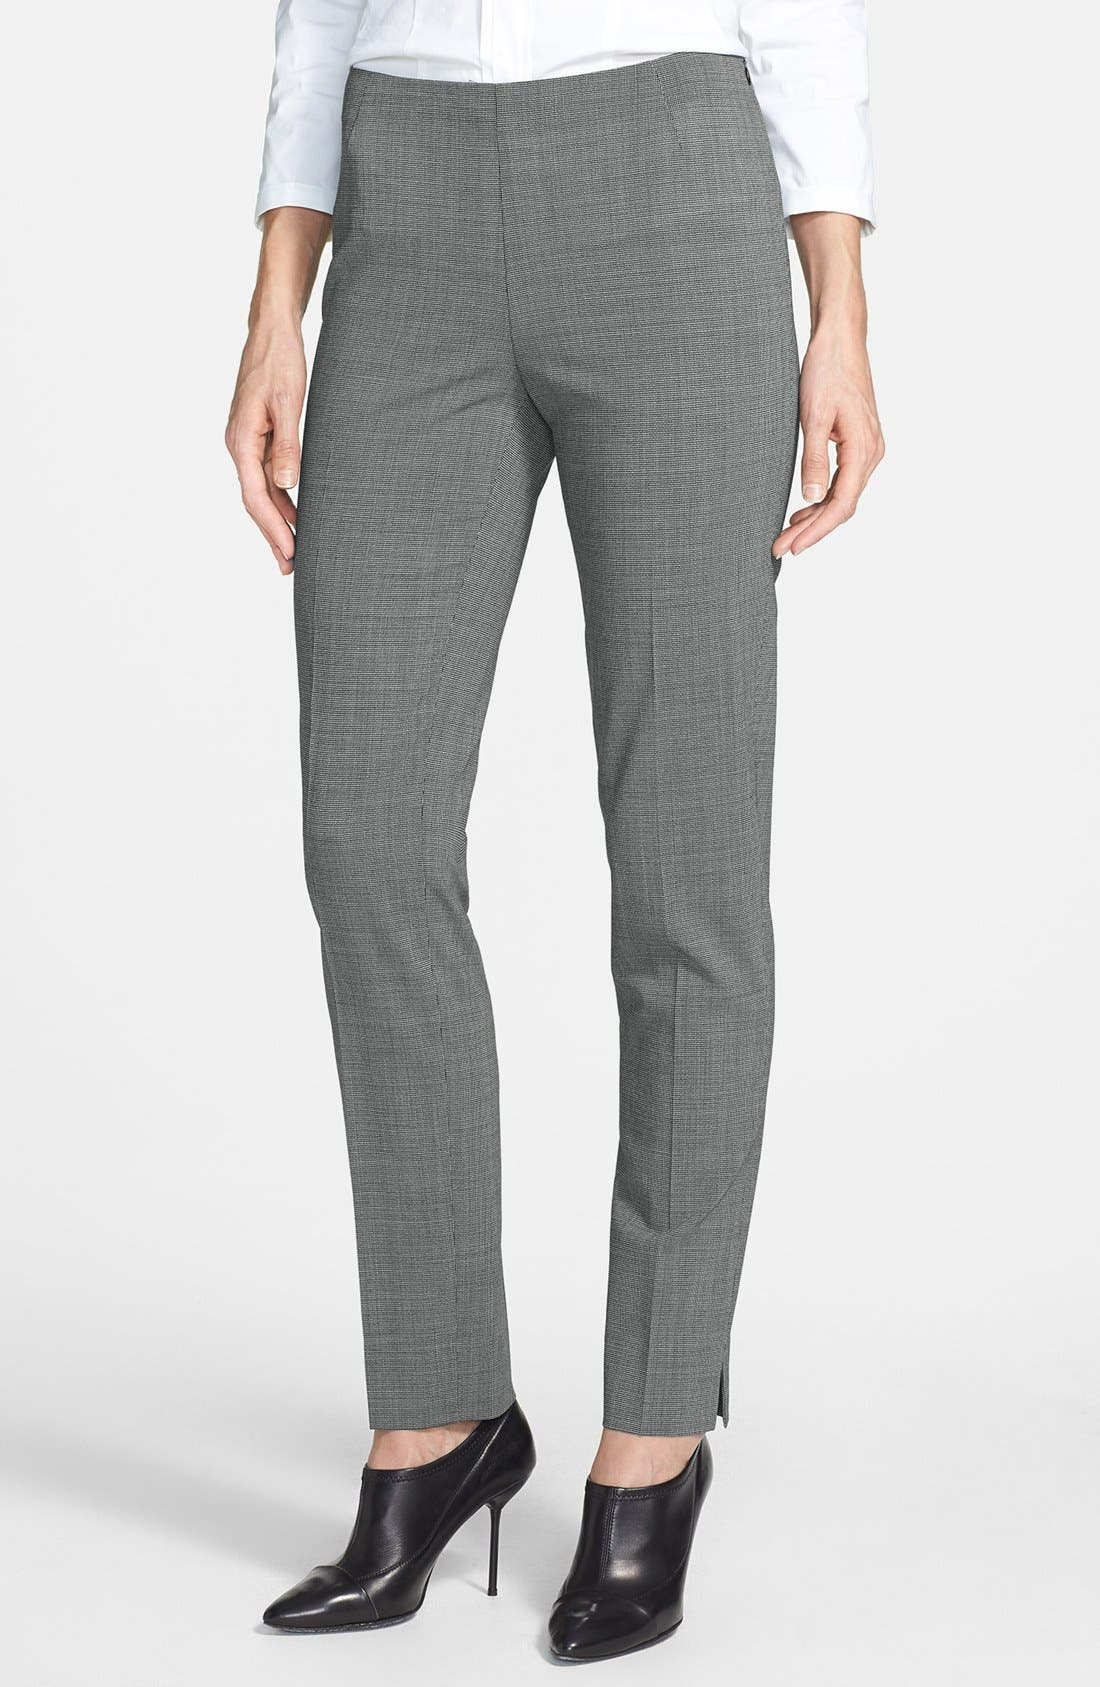 Alternate Image 1 Selected - Lafayette 148 New York 'Chrystie' Stretch Wool Pants